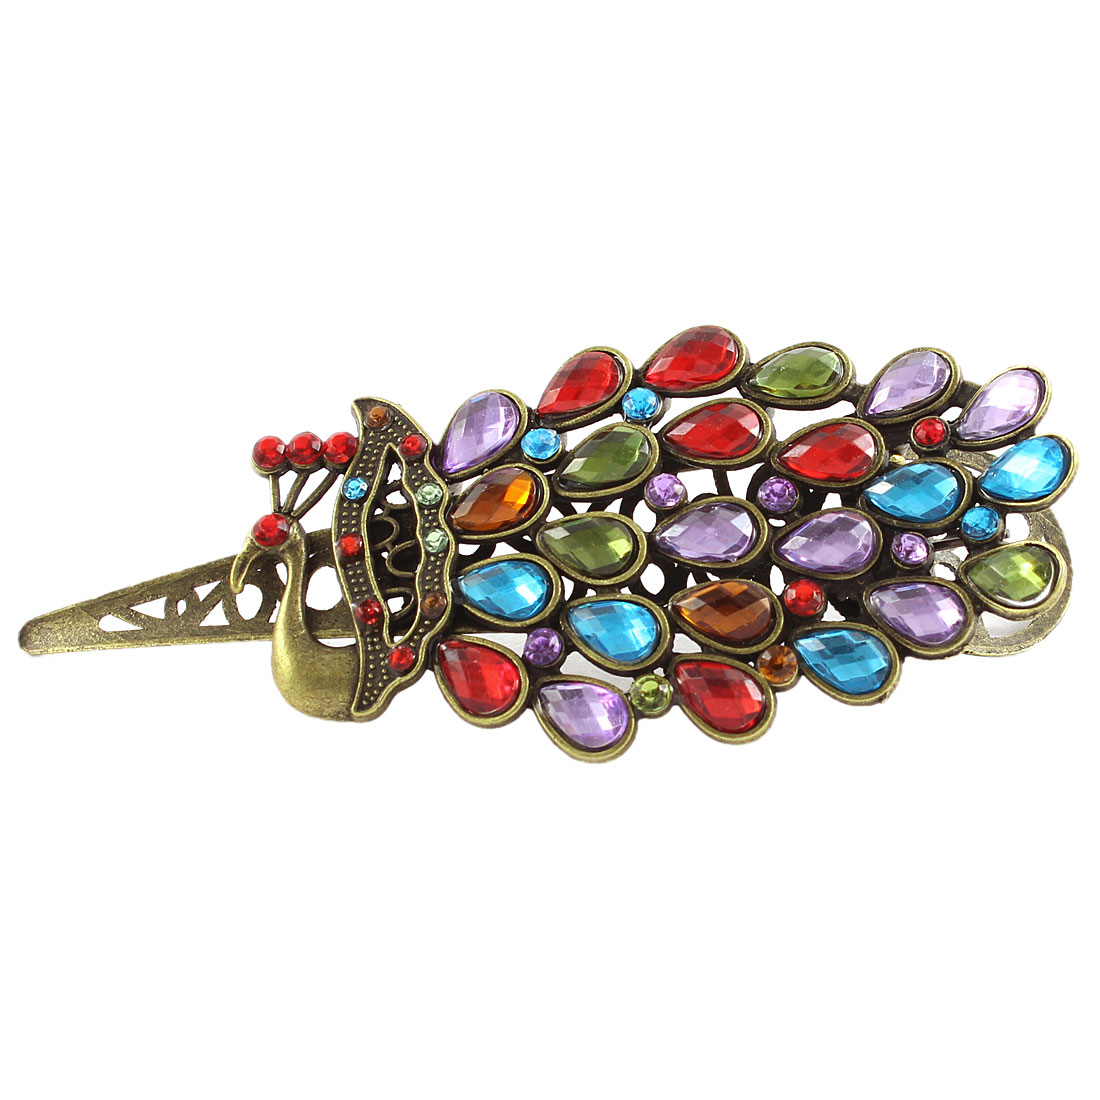 Rhinestone Peacock Shape Women Hair Barrette Hairpin Clip Colorful